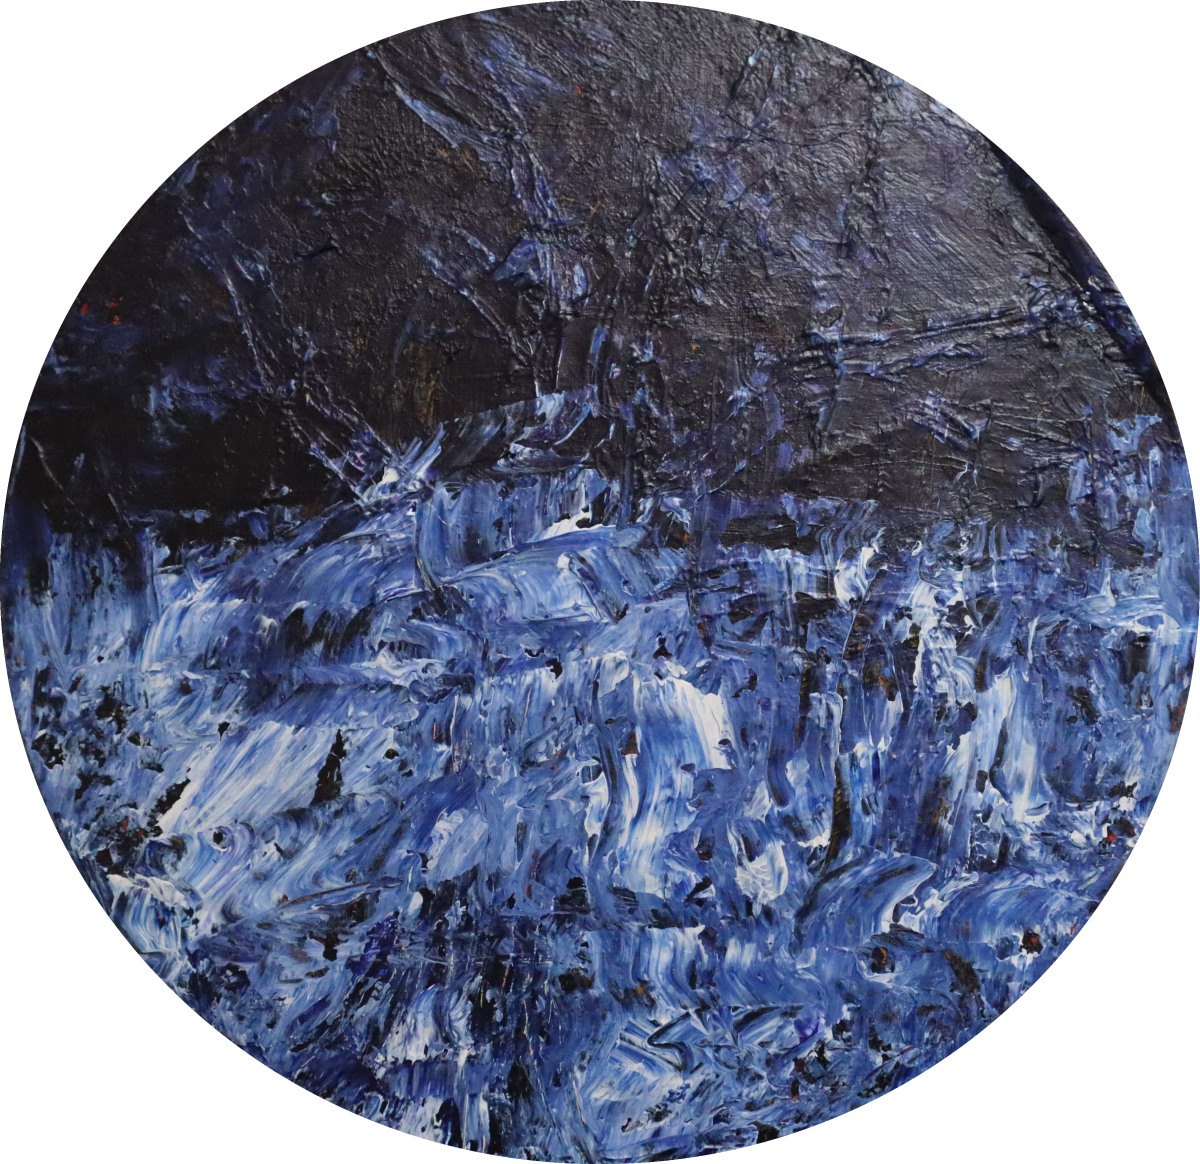 Abstract acrylic painting depicting stormy ocean waves with a dark sky